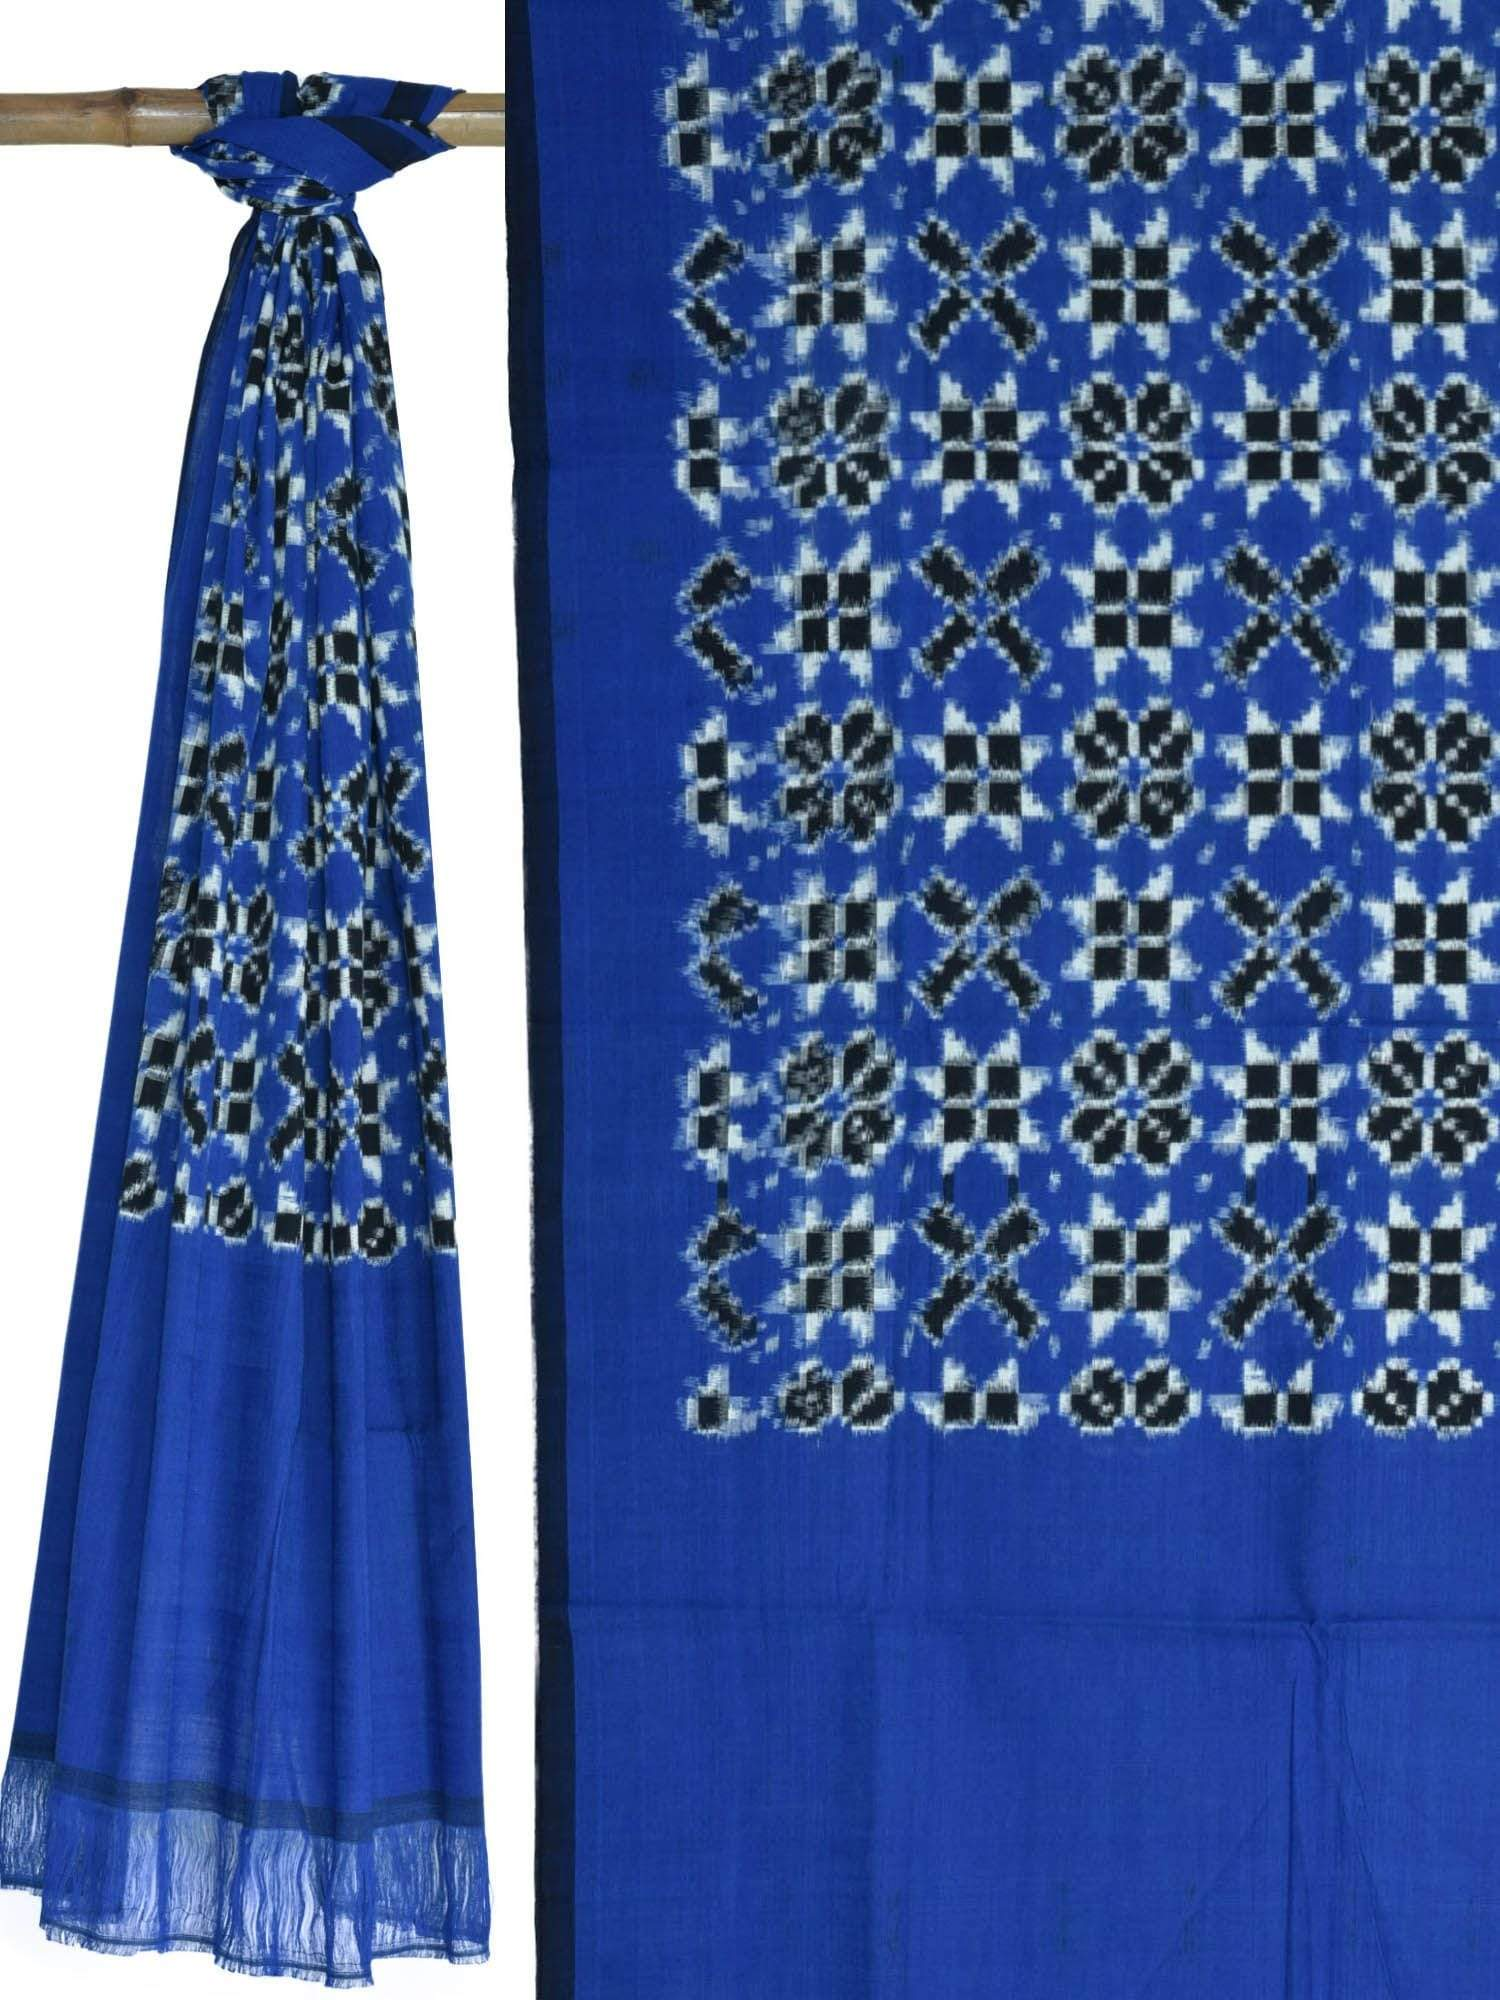 Blue and Black Pochampally Ikat Cotton Handloom Dupatta with Telia Design ds1622